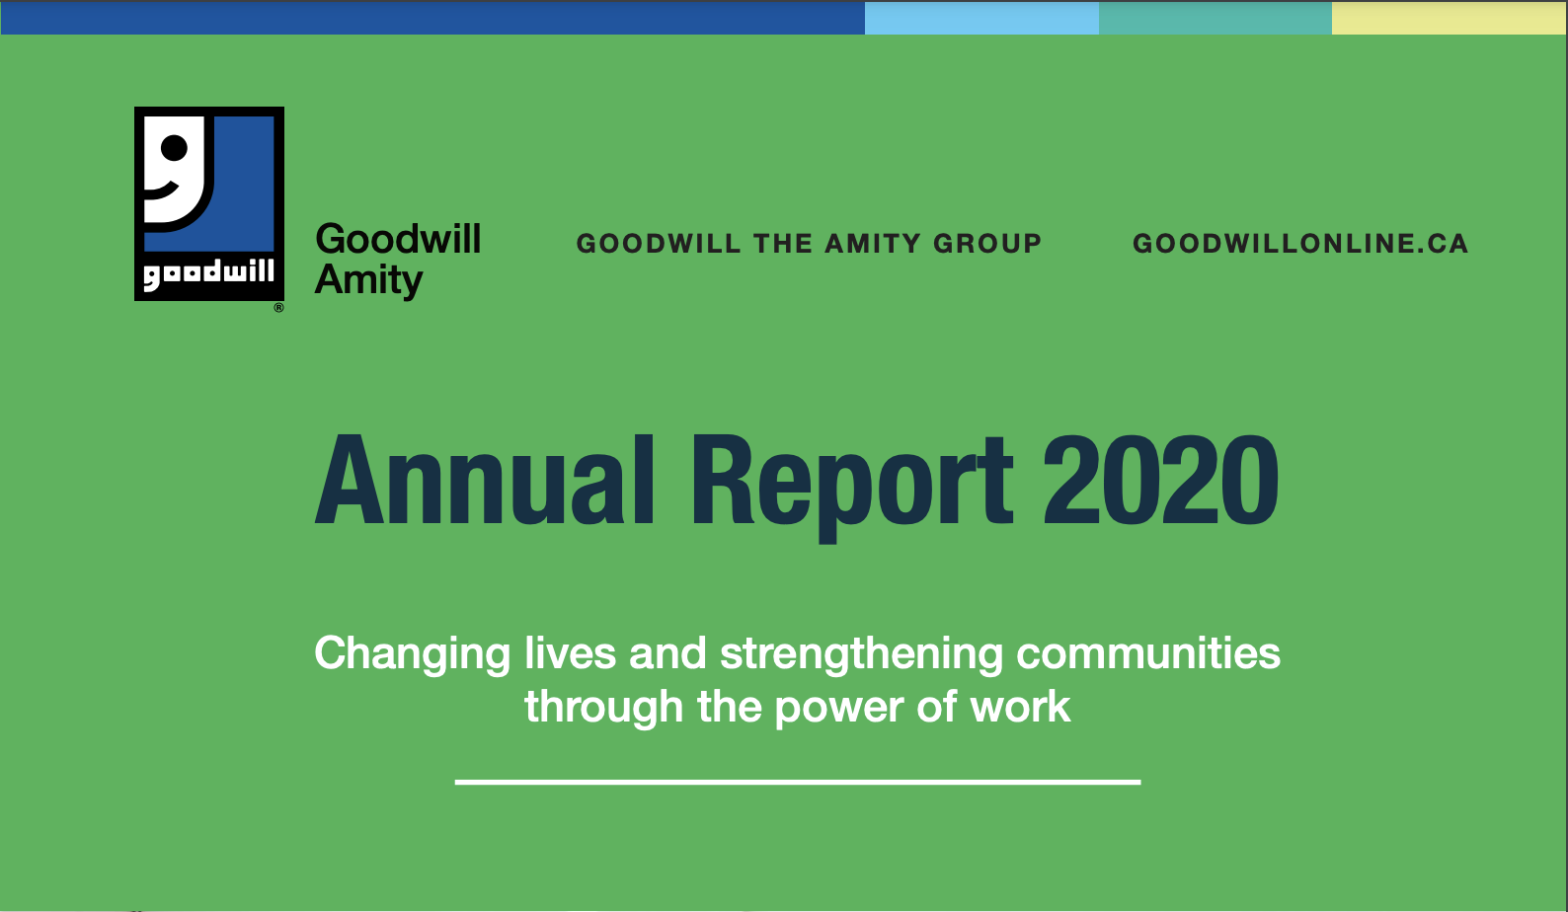 thumbnail screenshot of the Goodwill Amity Annual Report 2020